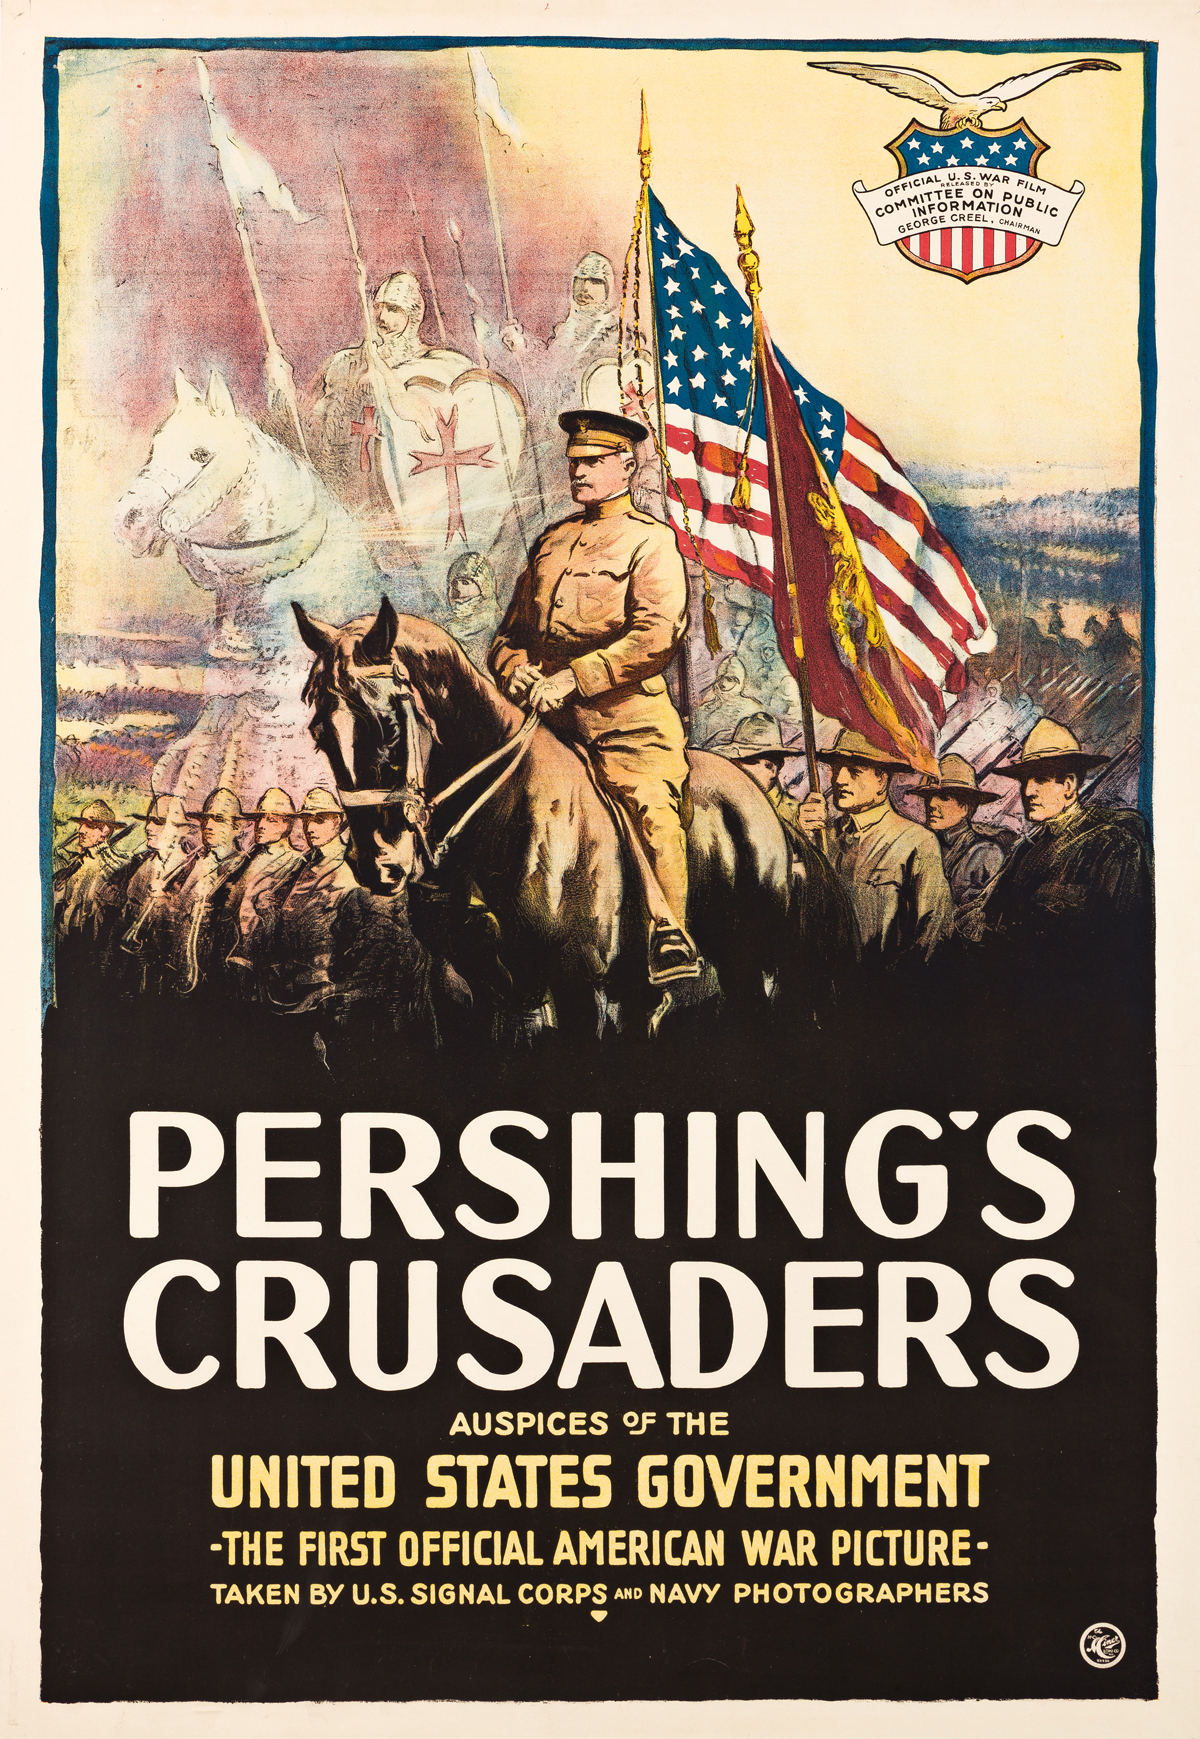 DESIGNER UNKNOWN.  PERSHINGS CRUSADERS. 1918. 41¼x28¼ inches, 104¾x71¾ cm. The H.C. Miner Litho. Co., New York.